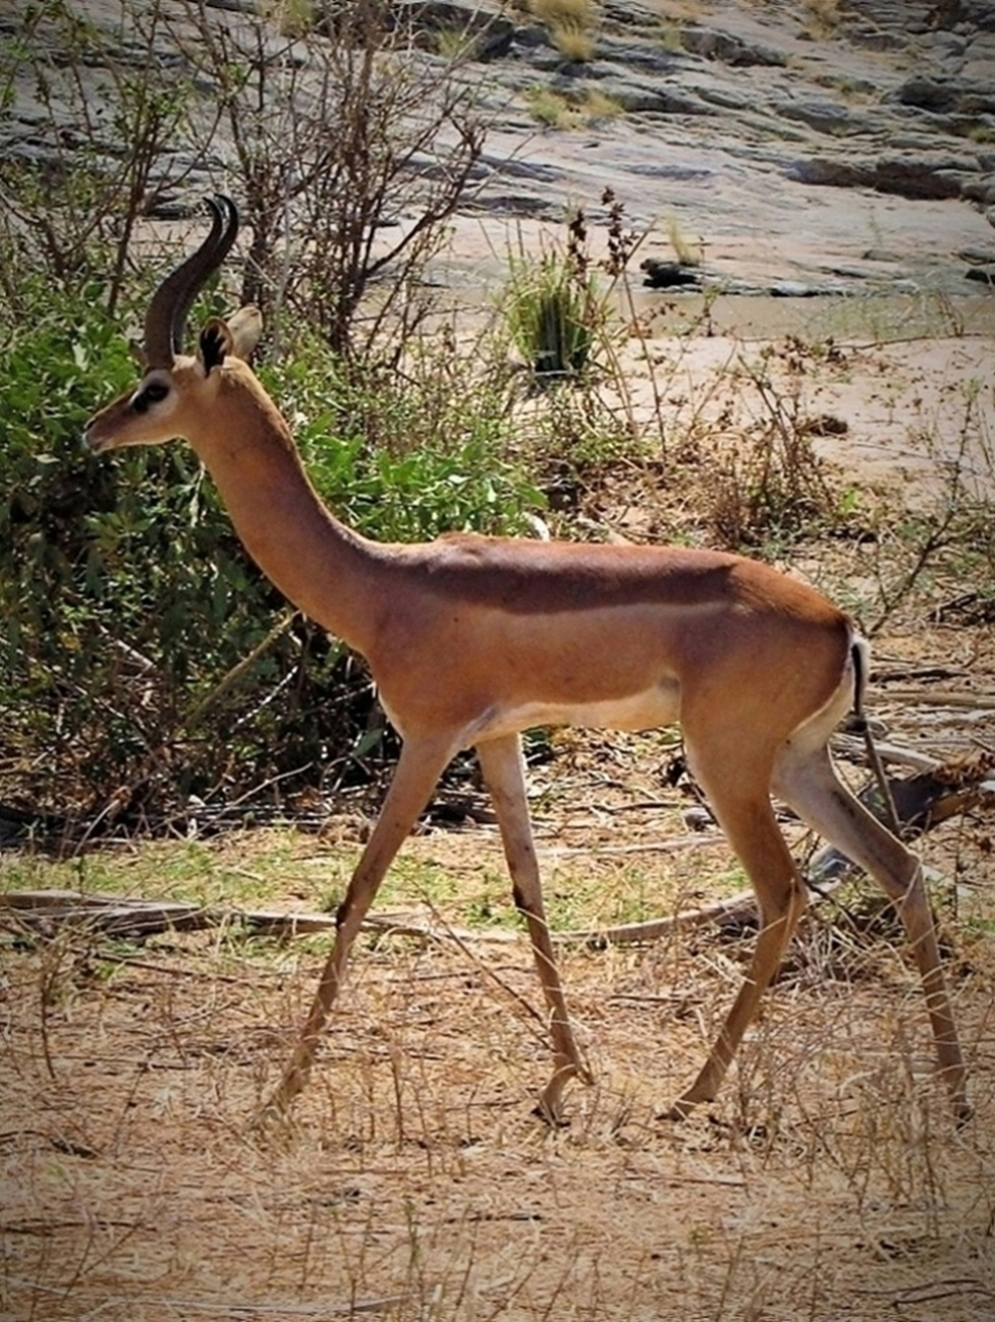 https://bubo.sk/uploads/galleries/16289/samburu-gerenuk-img_9079.jpg